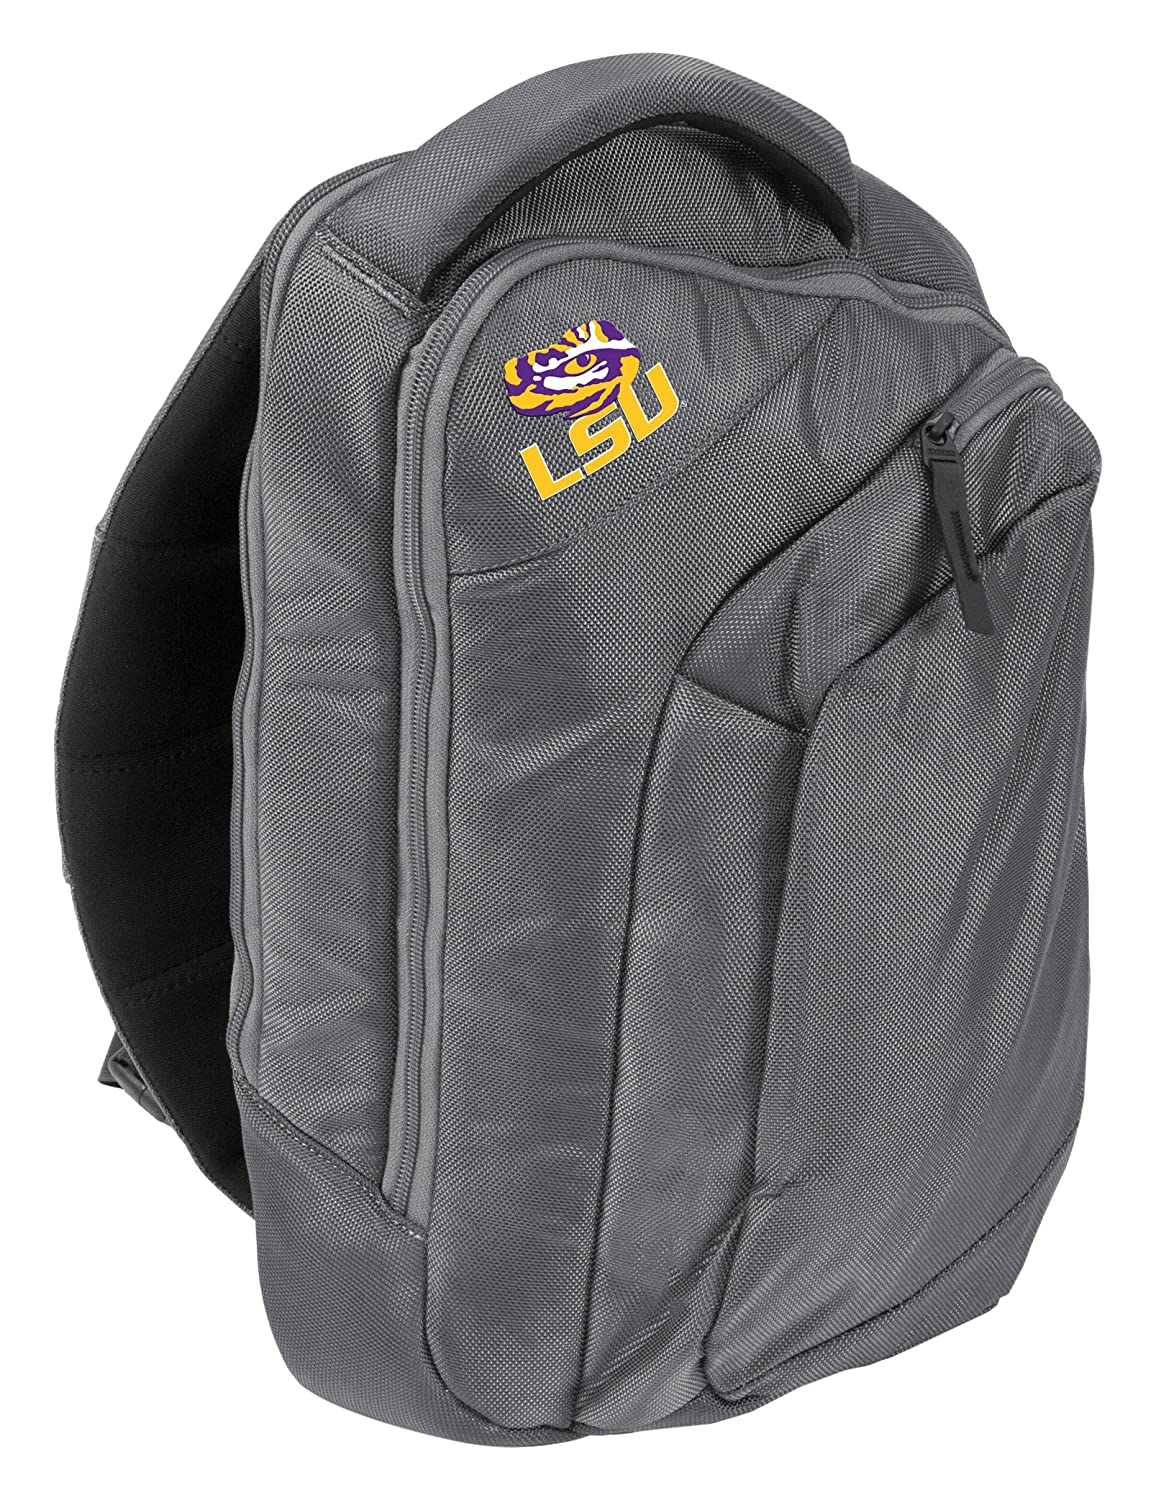 647b42c3edb0 Amazon.com   Logo Brands NCAA LSU Game Changer Sling Backpack   Sports    Outdoors